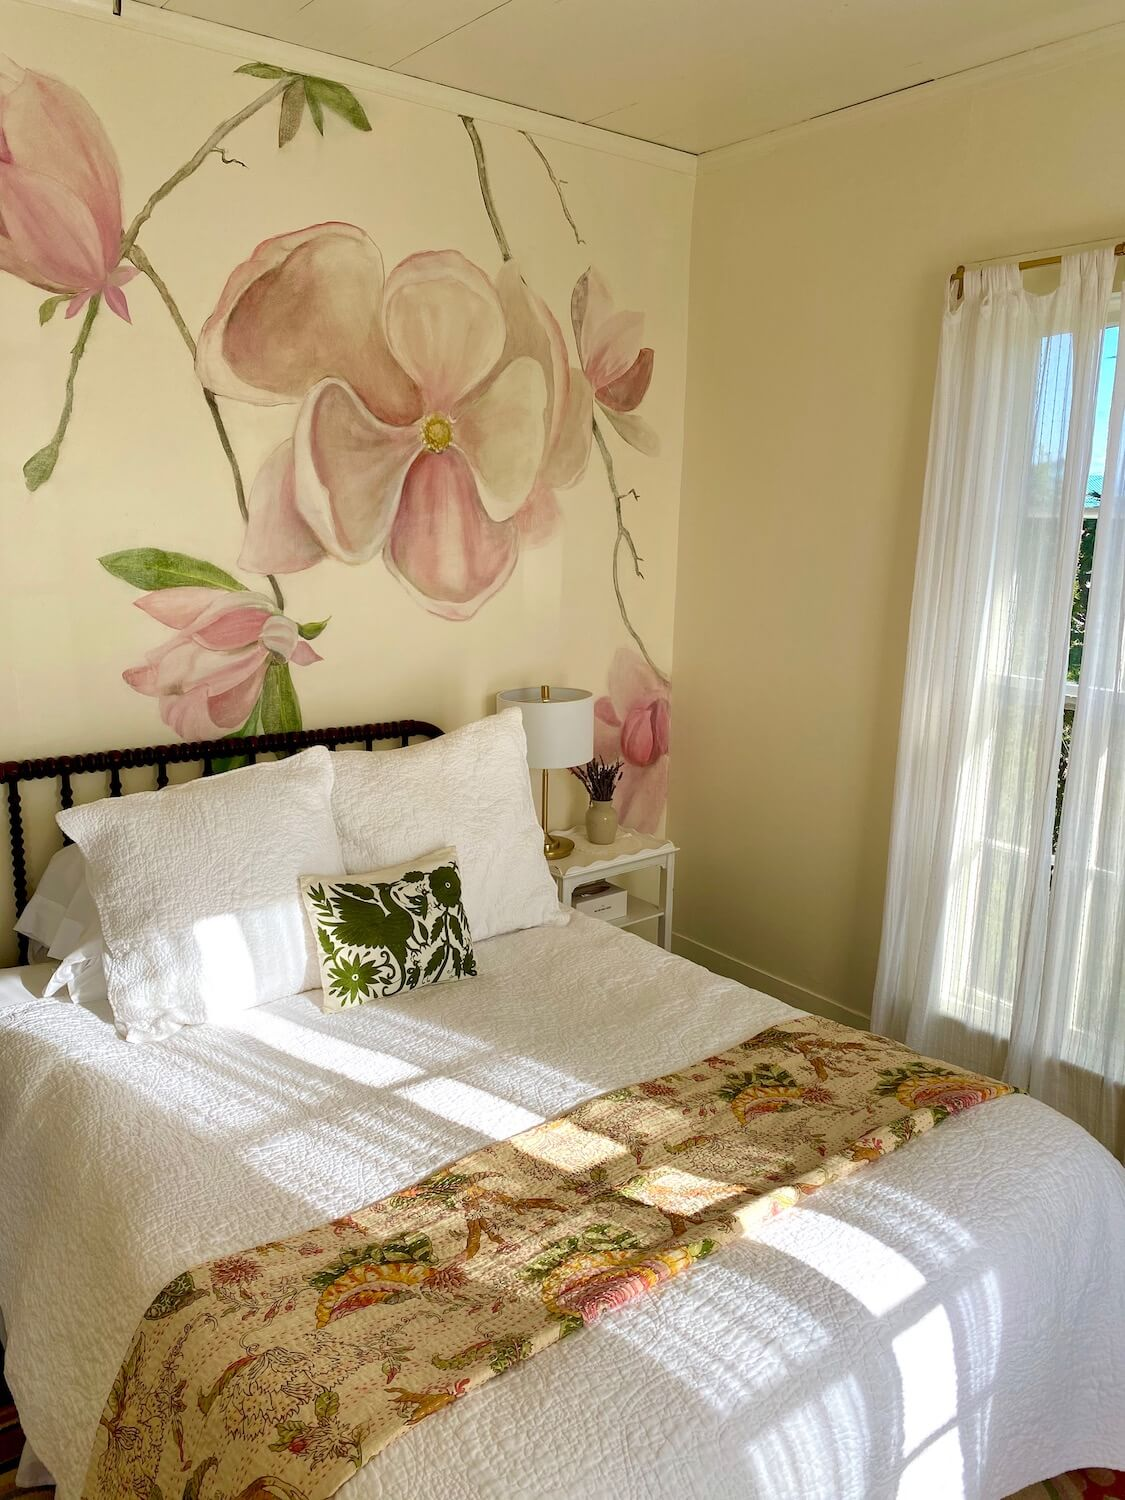 This photo of a room at the Tokeland Hotel on the Washington Coast shows a light filled room with a queen sized bed with cream colored walls and a magnolia tree branch and pink flower etched on the wall in water colors.